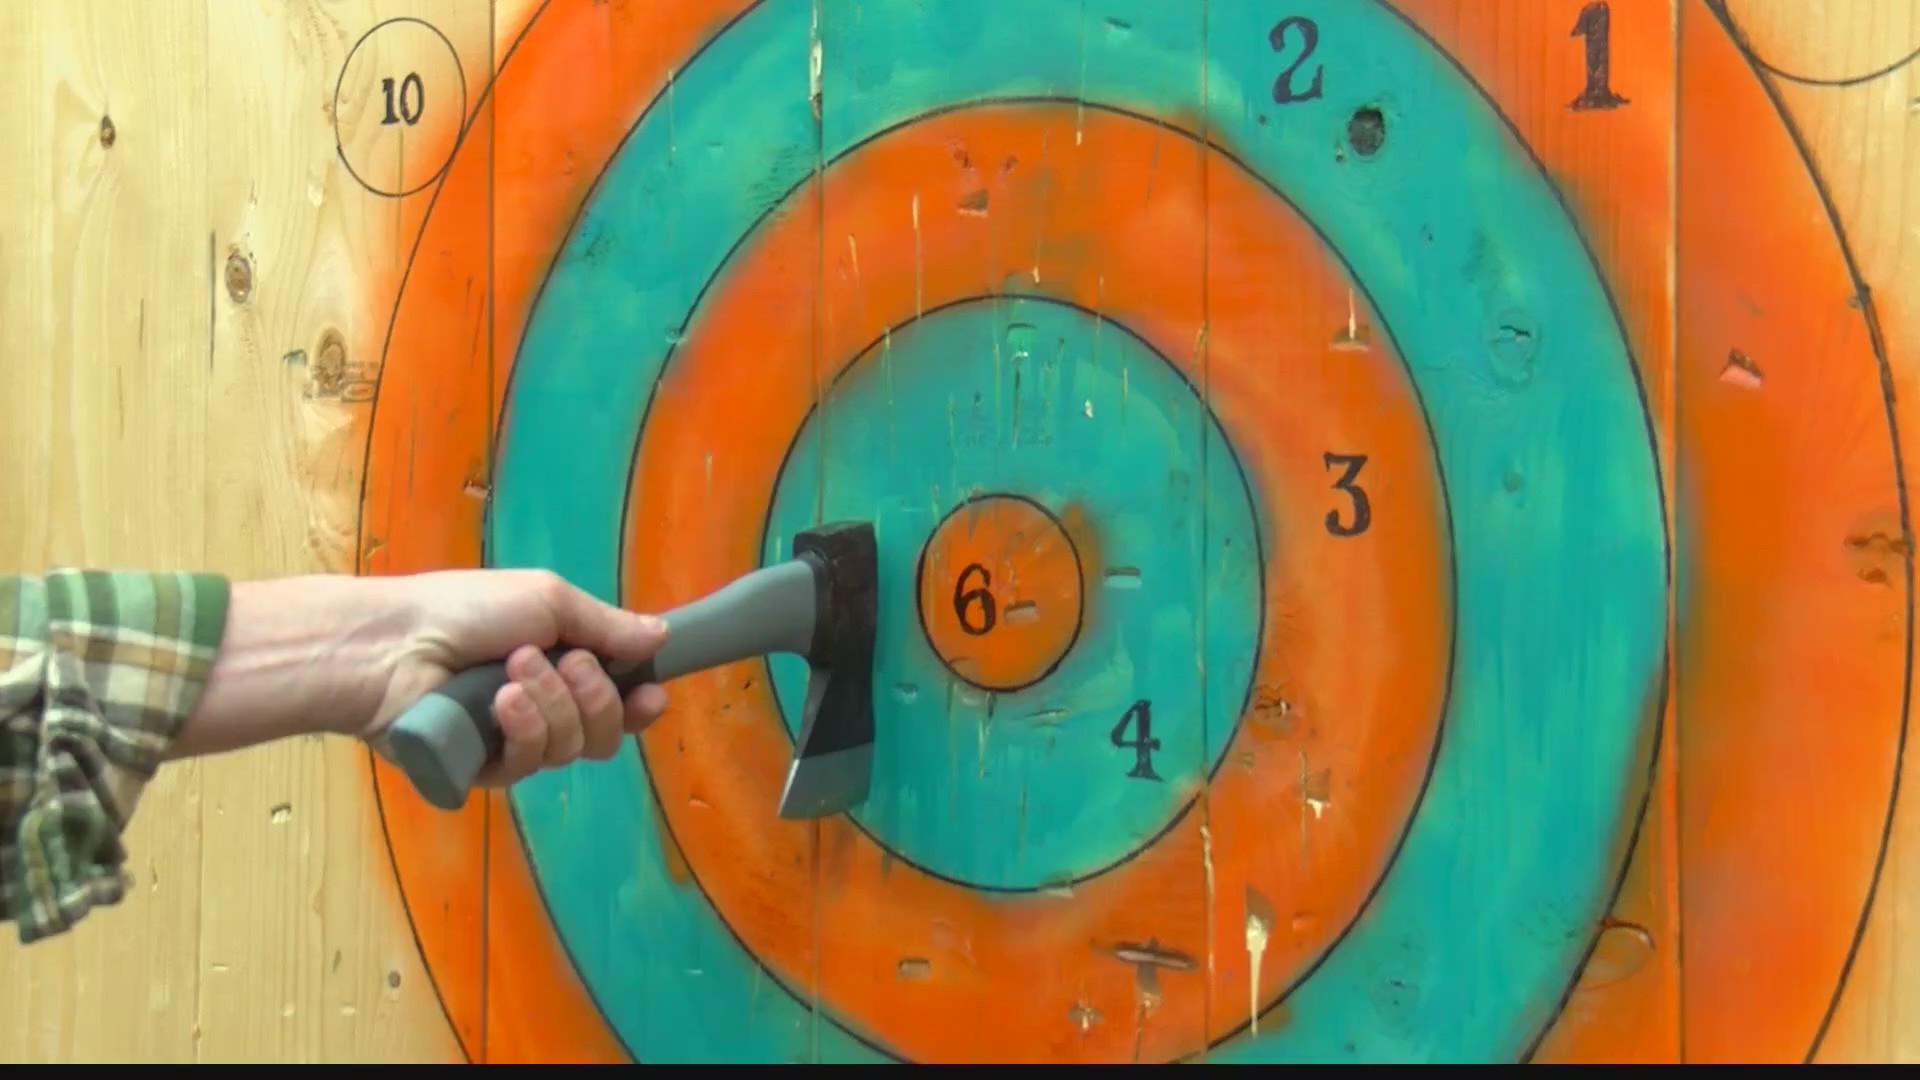 Axe_throwing_business_coming_to_Holliday_0_20190509224240